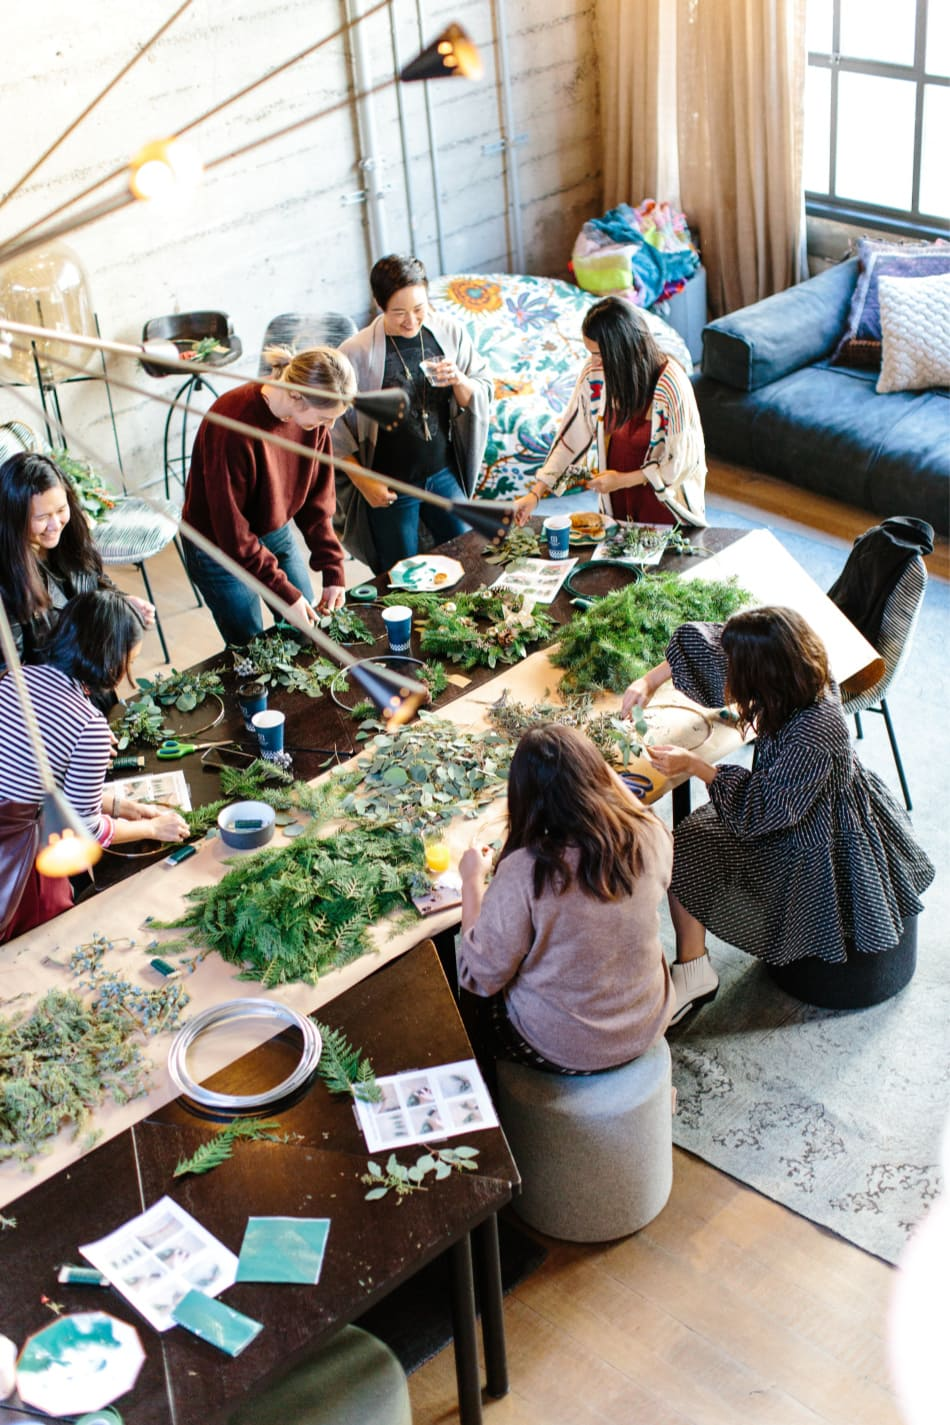 women gathered making things with herbs